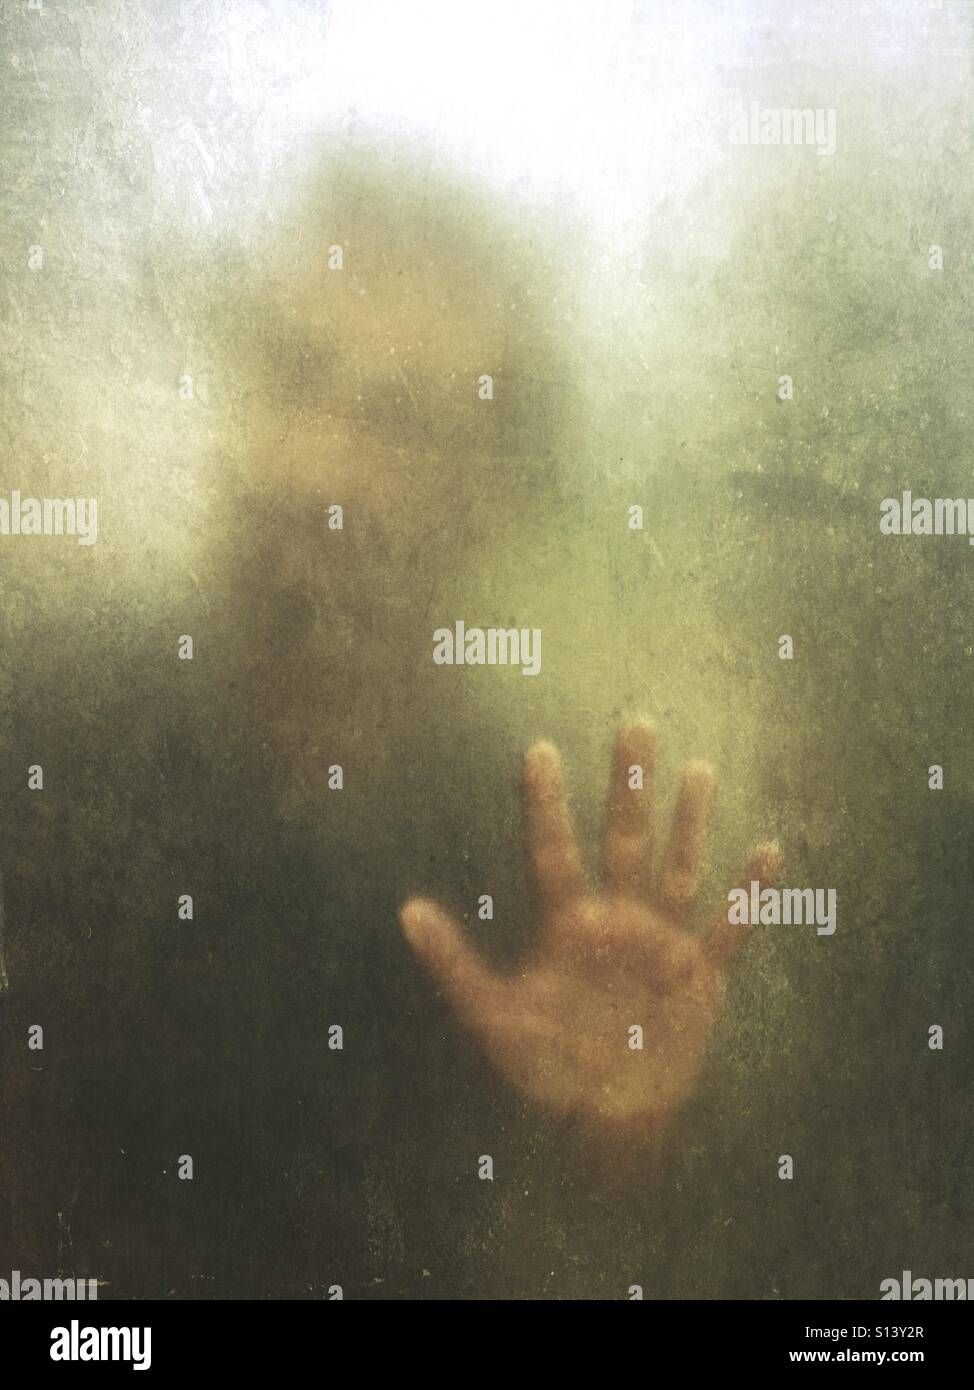 Mysterious man behind glass - Stock Image